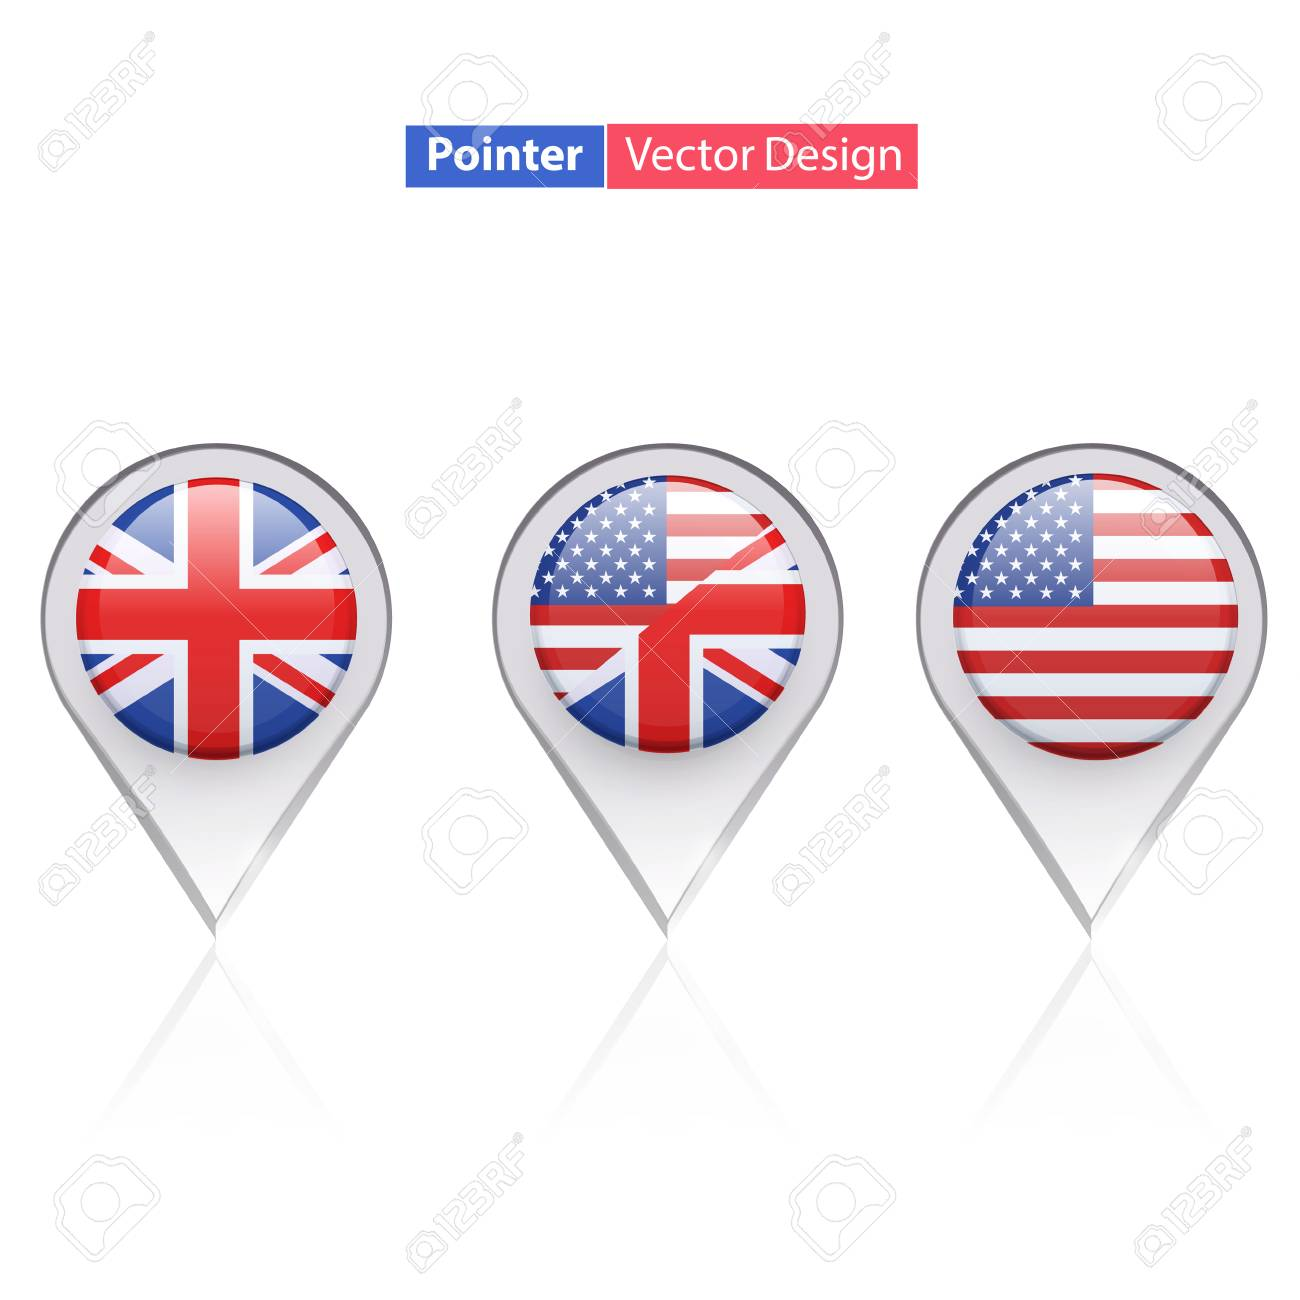 Set of English icon inside pointers  Vector design Stock Vector - 22785768